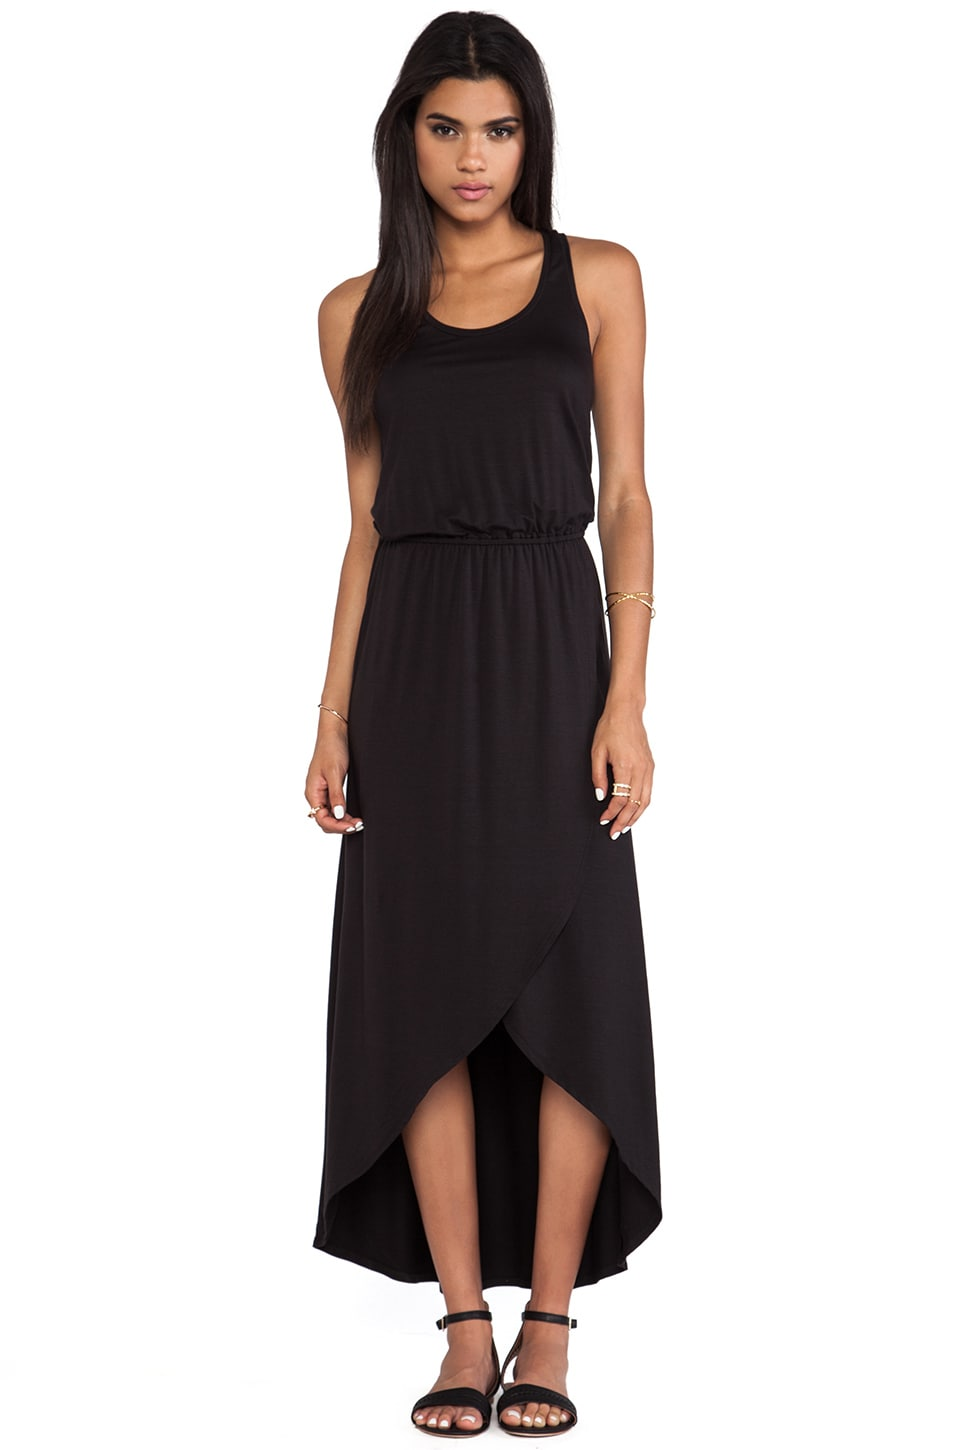 Splendid Hi-Lo Tank Dress in Black